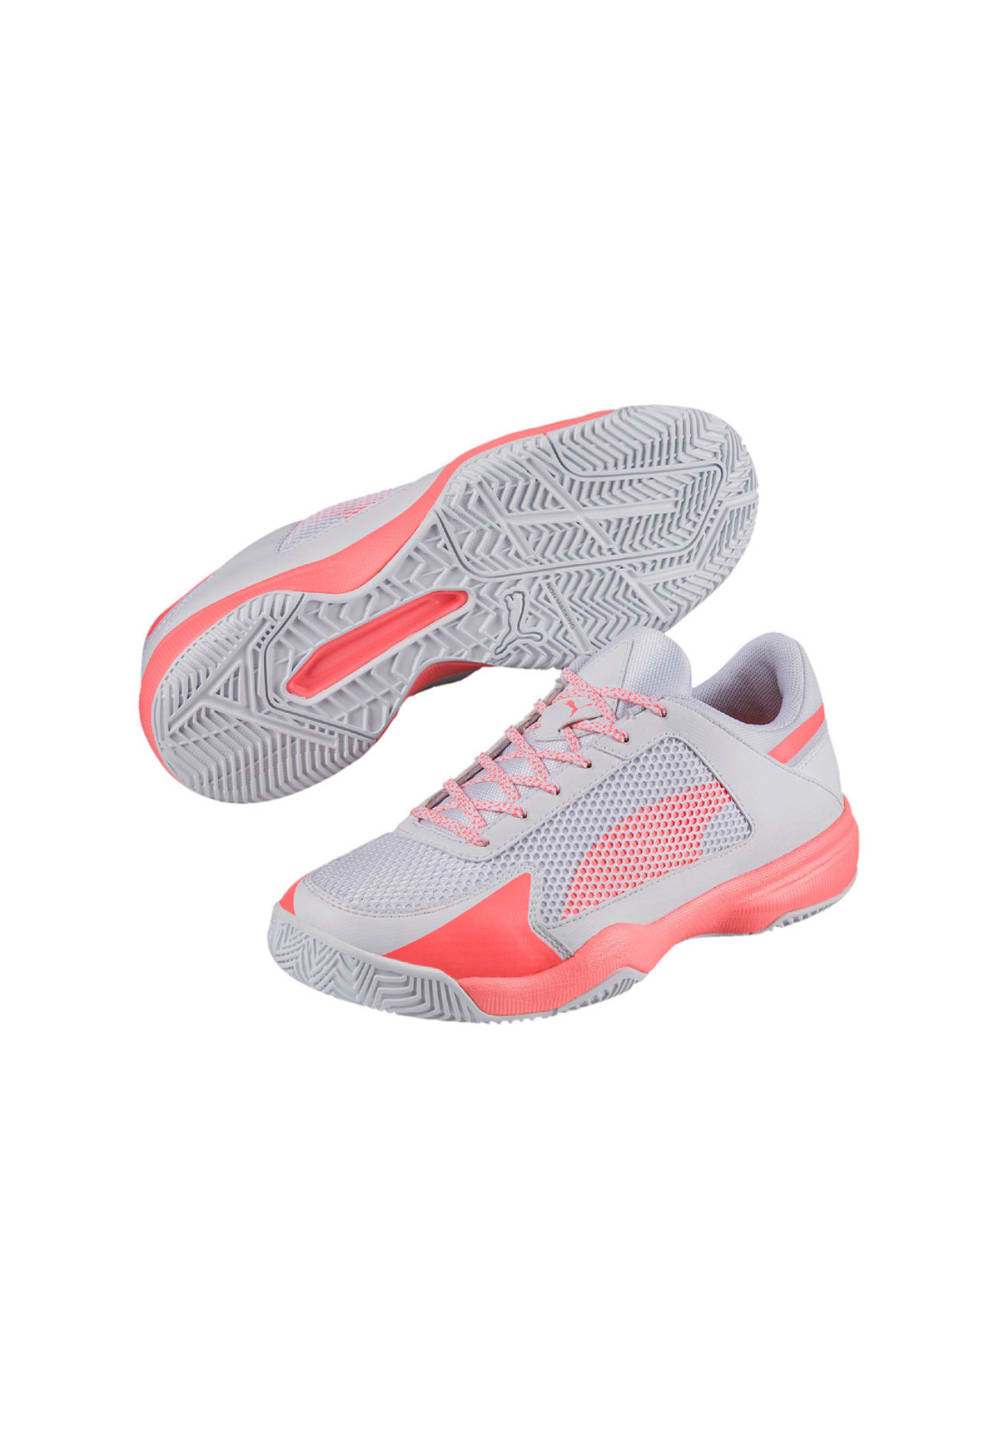 Puma Evospeed Indoor Netfit 5 - Handball shoes for Women - Grey  9564406fab26